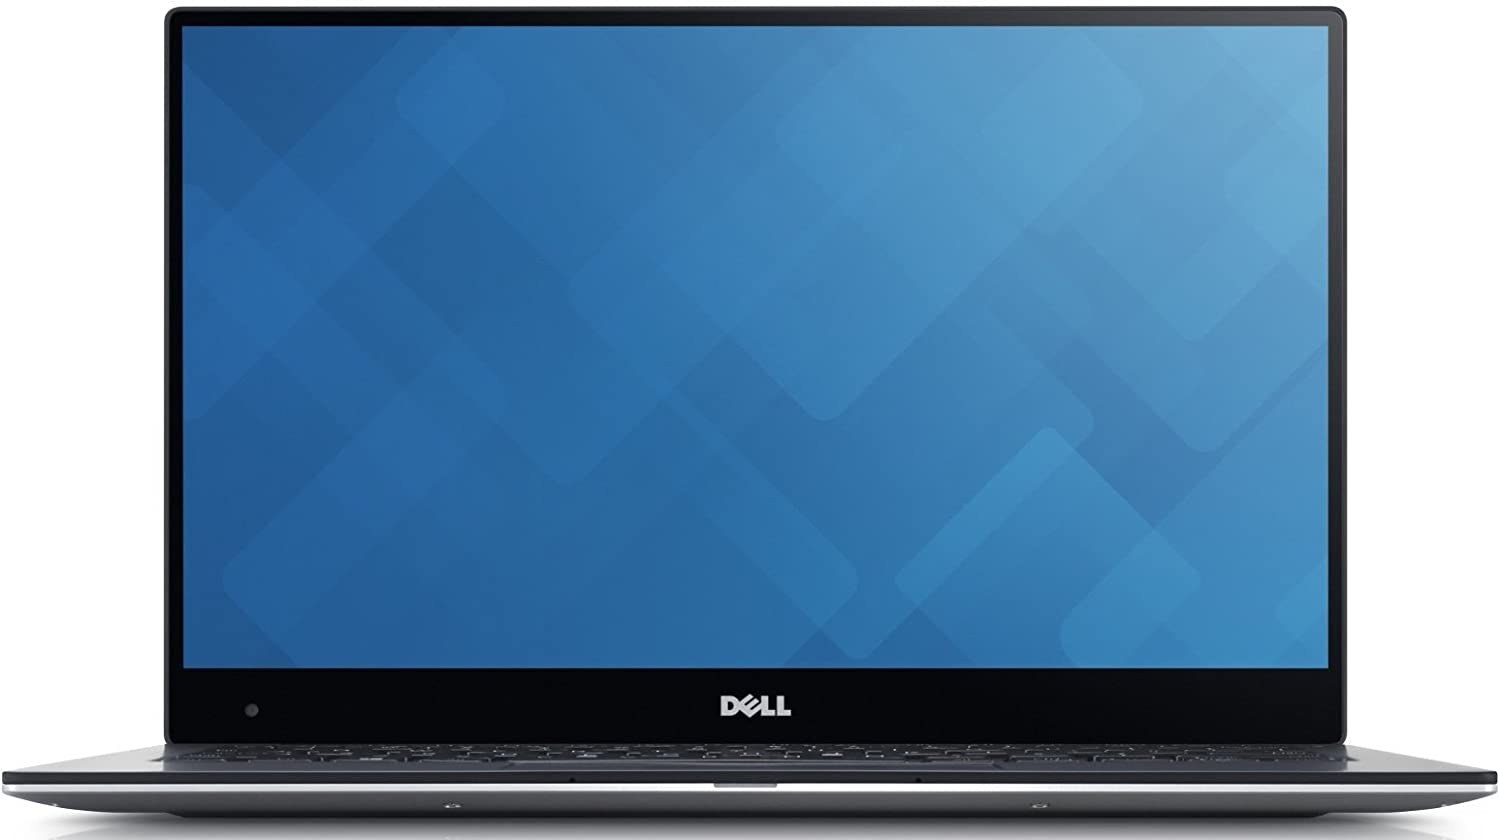 Dell XPS 13 9360 13.3in FHD InfinityEdge Display (Non-Touch) Laptop Intel Core i5-8250U, 8GB LPDDR3-1866, 256GB SSD Windows 10 Pro (Renewed)